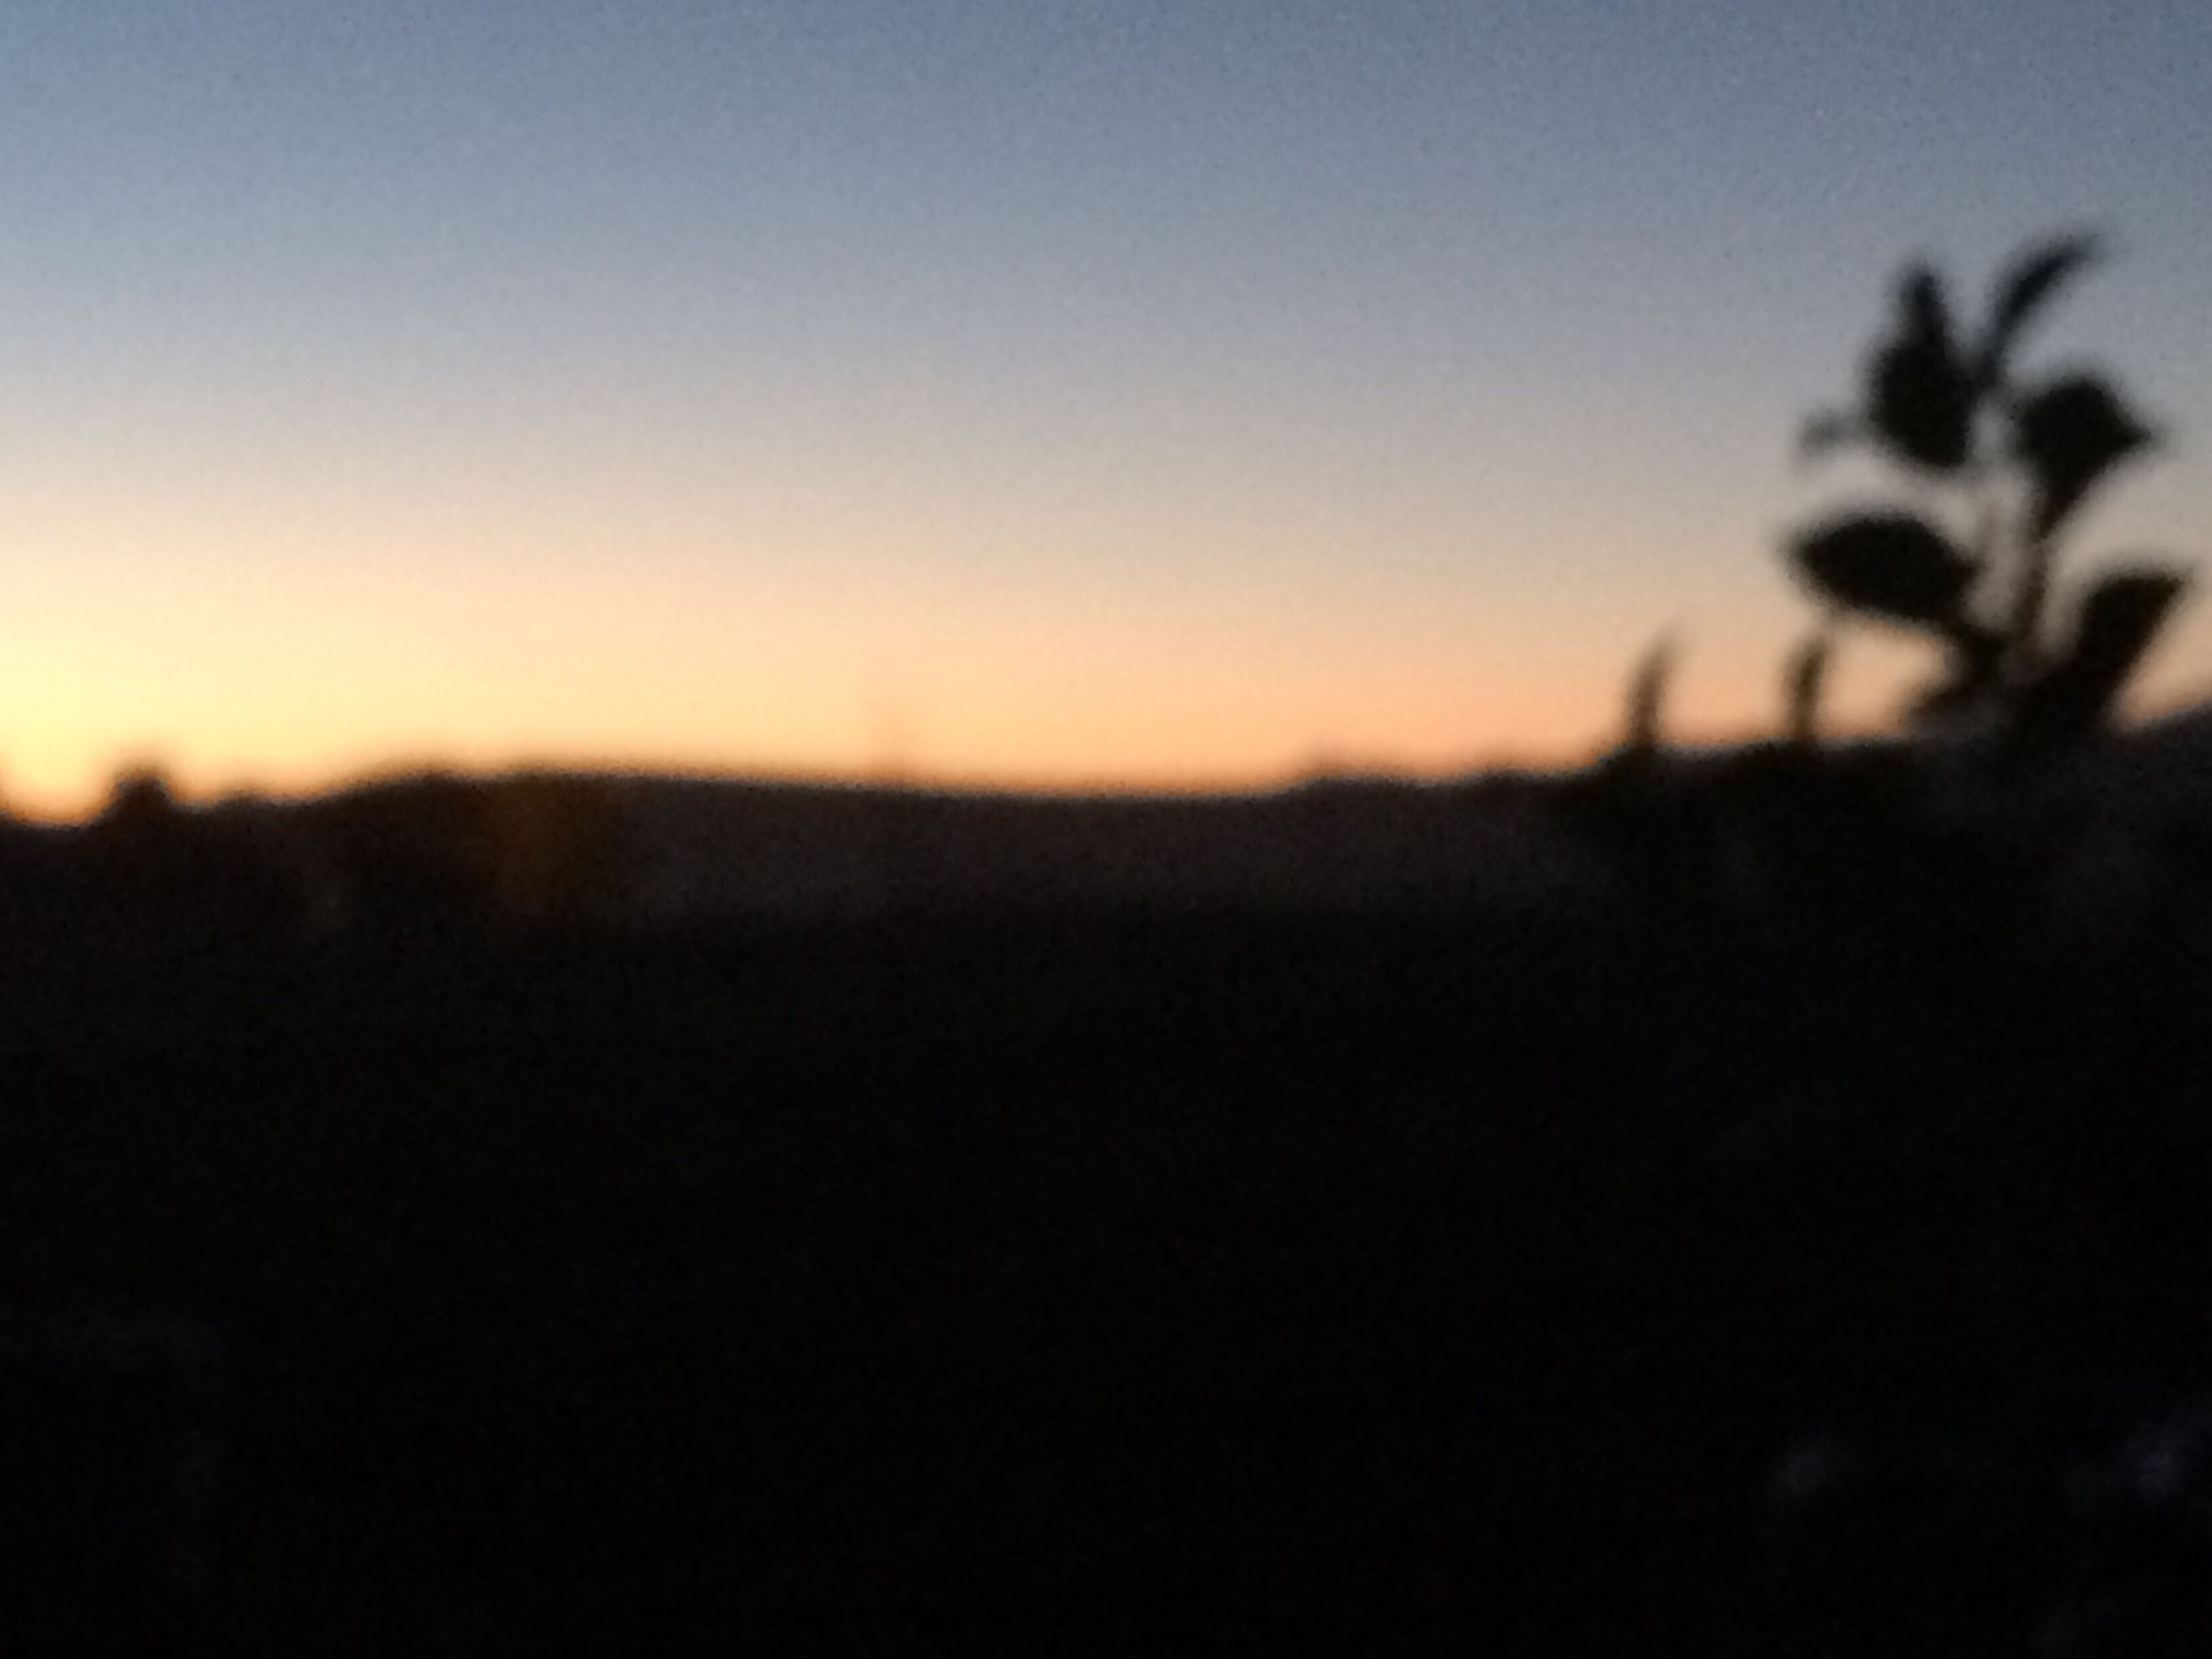 sunset, nature, silhouette, tranquility, beauty in nature, no people, scenics, sky, outdoors, close-up, day